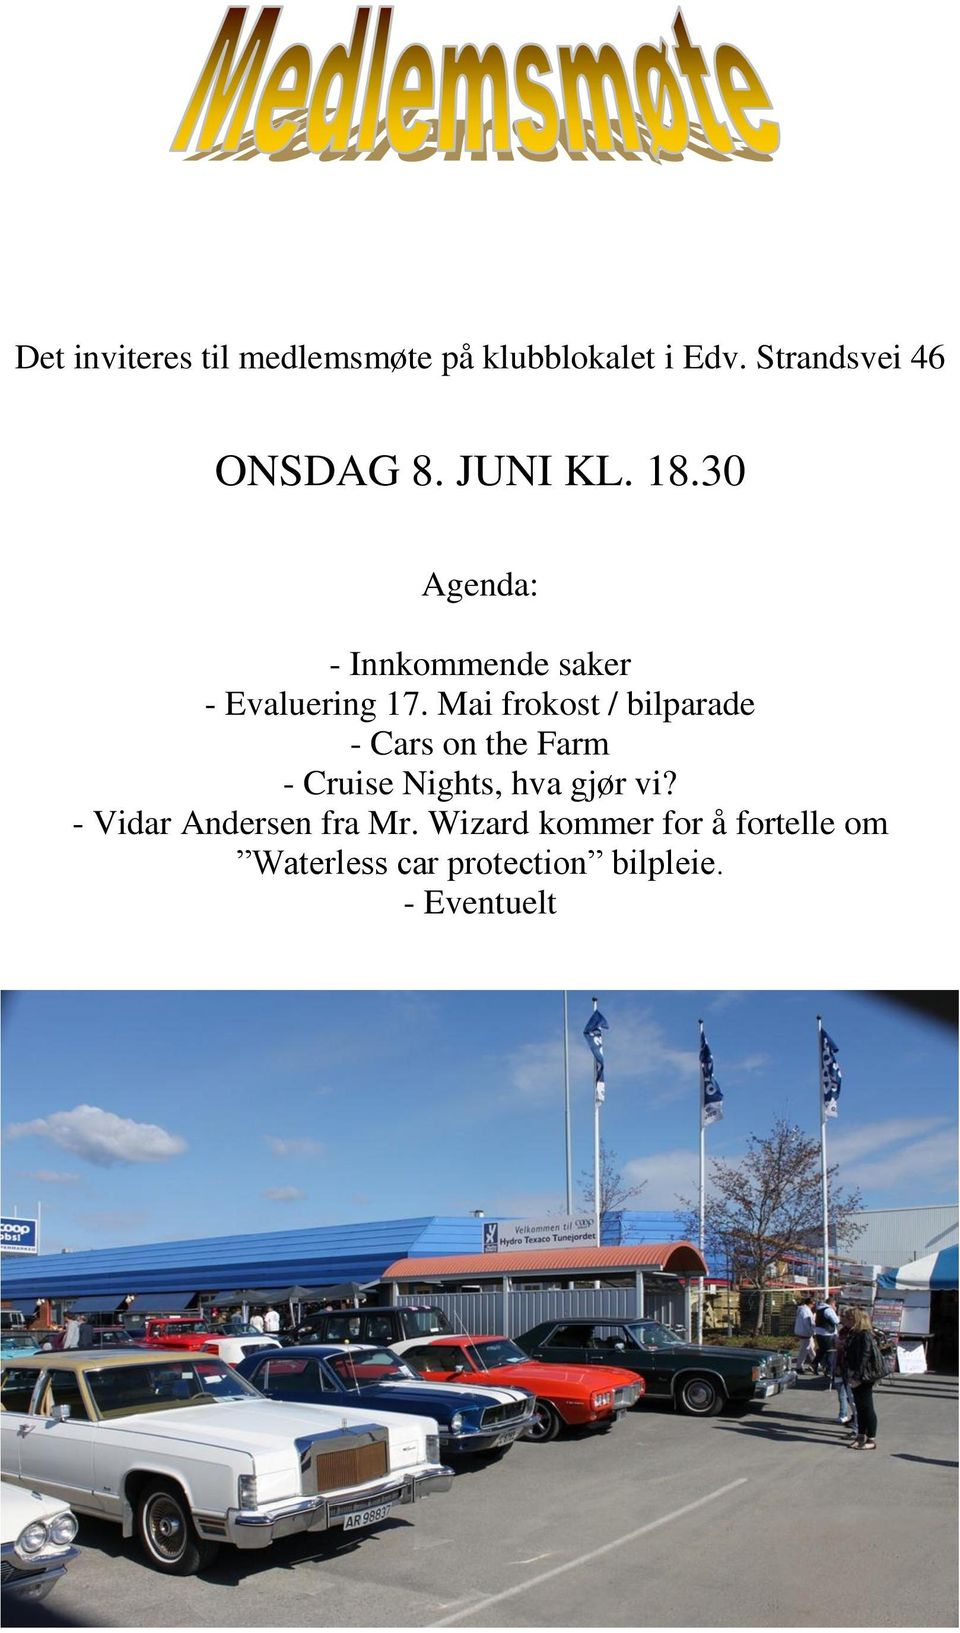 Mai frokost / bilparade - Cars on the Farm - Cruise Nights, hva gjør vi?